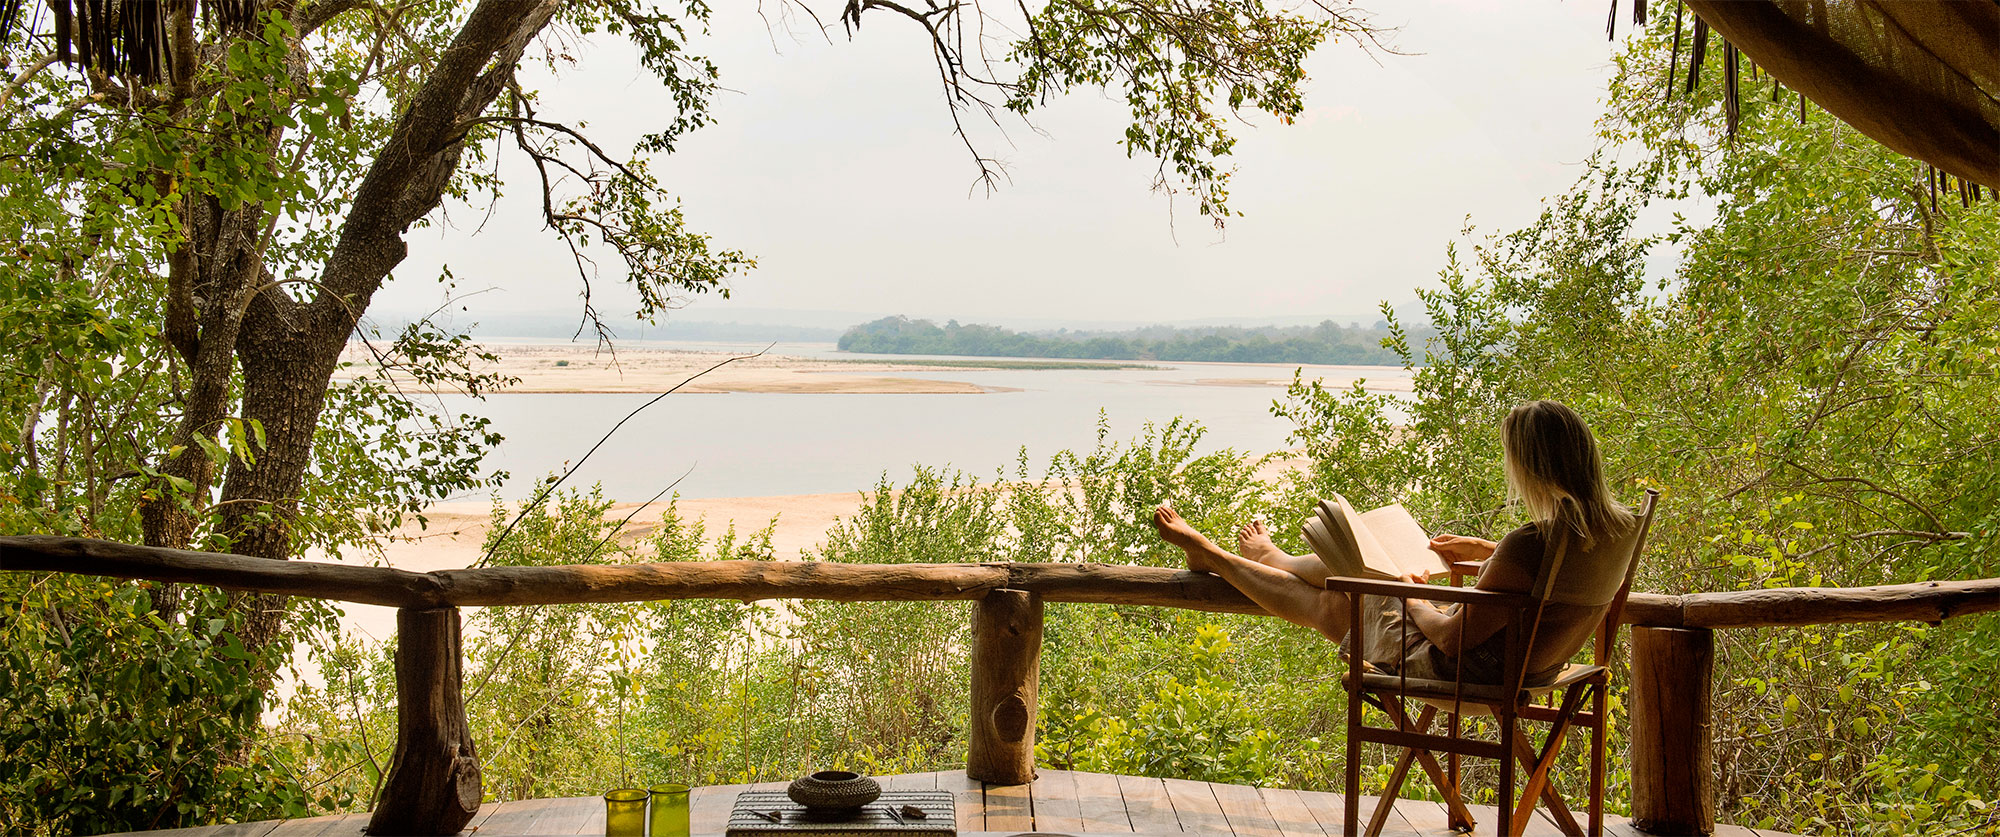 Tanzania Travel Packages - River View at Sand Rivers Selous Lodge, Selous Game Reserve